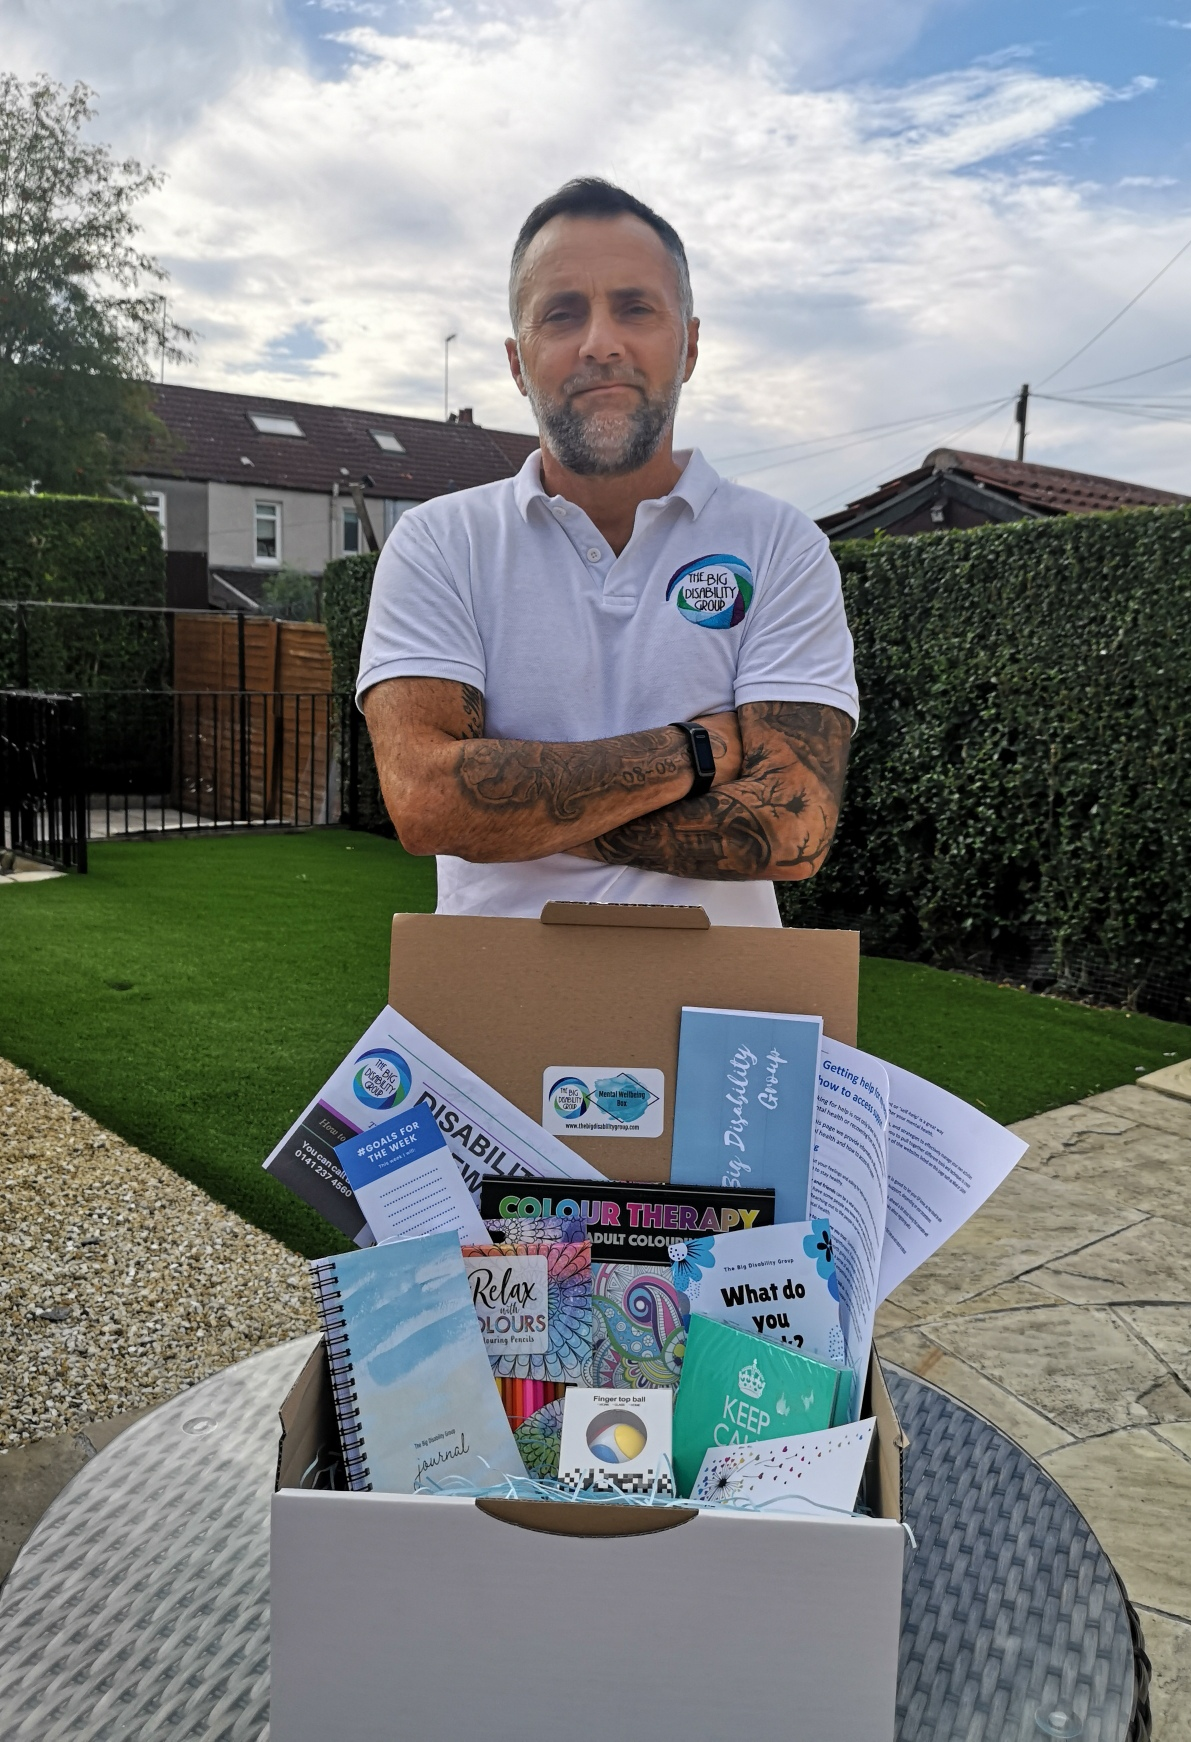 Kevin Crawford with the charity's Wellbeing Box